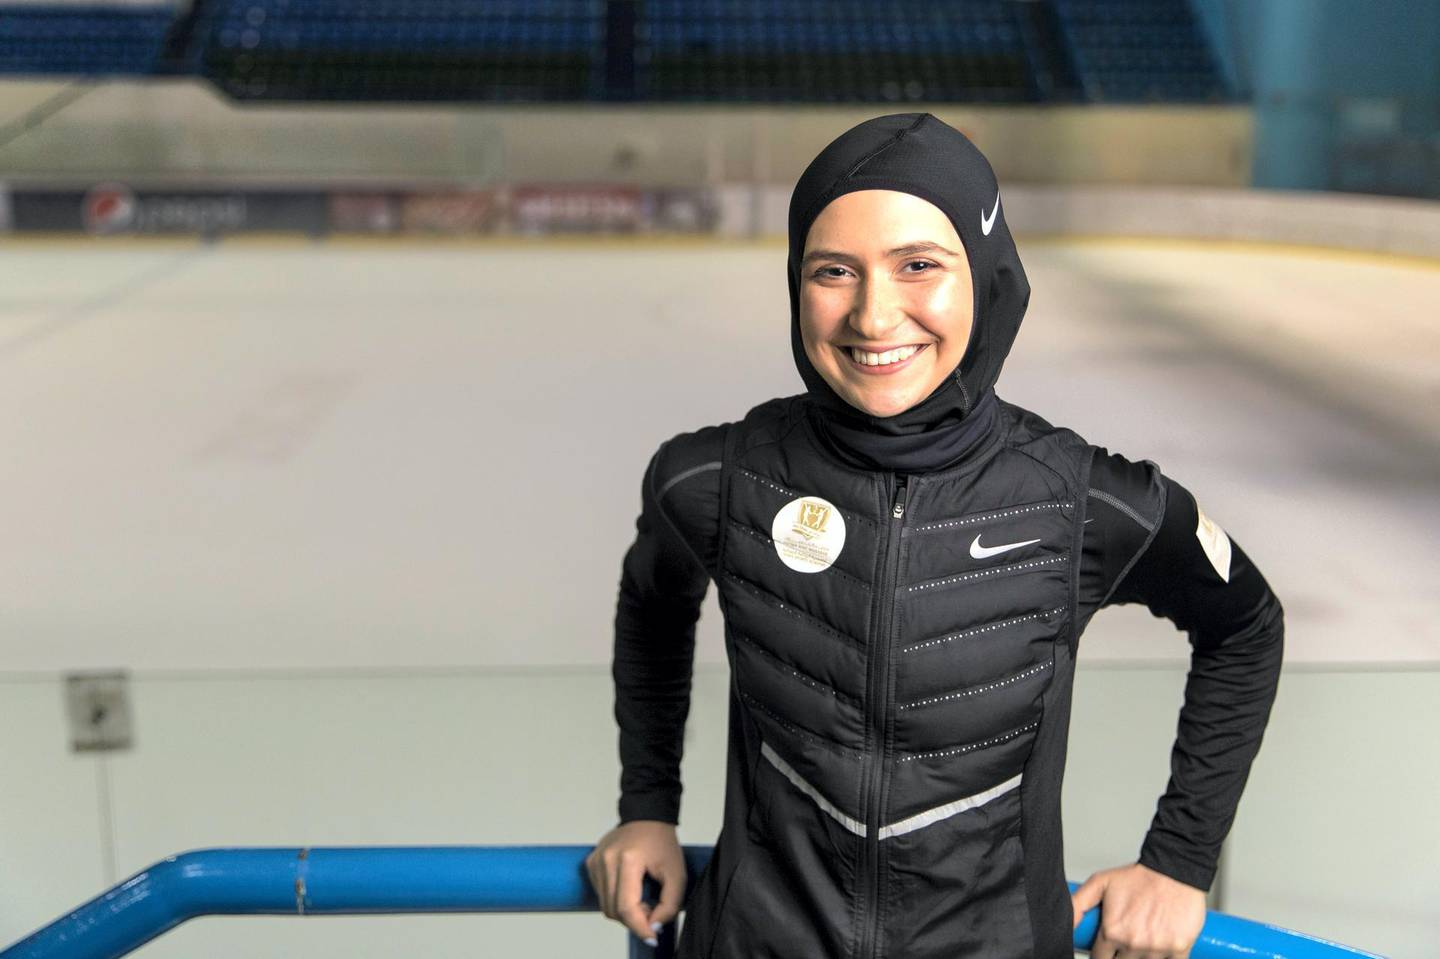 Abu Dhabi, United Arab Emirates, August 23, 2017:    Zahra Lari, an Emirati figure skater who is working towards qualifying for the 2018 Winter Olympics at the Ice Rink in the Zayed Sports City area of Abu Dhabi on August 23, 2017. Christopher Pike / The National  Reporter: Amith Passela Section: Sport